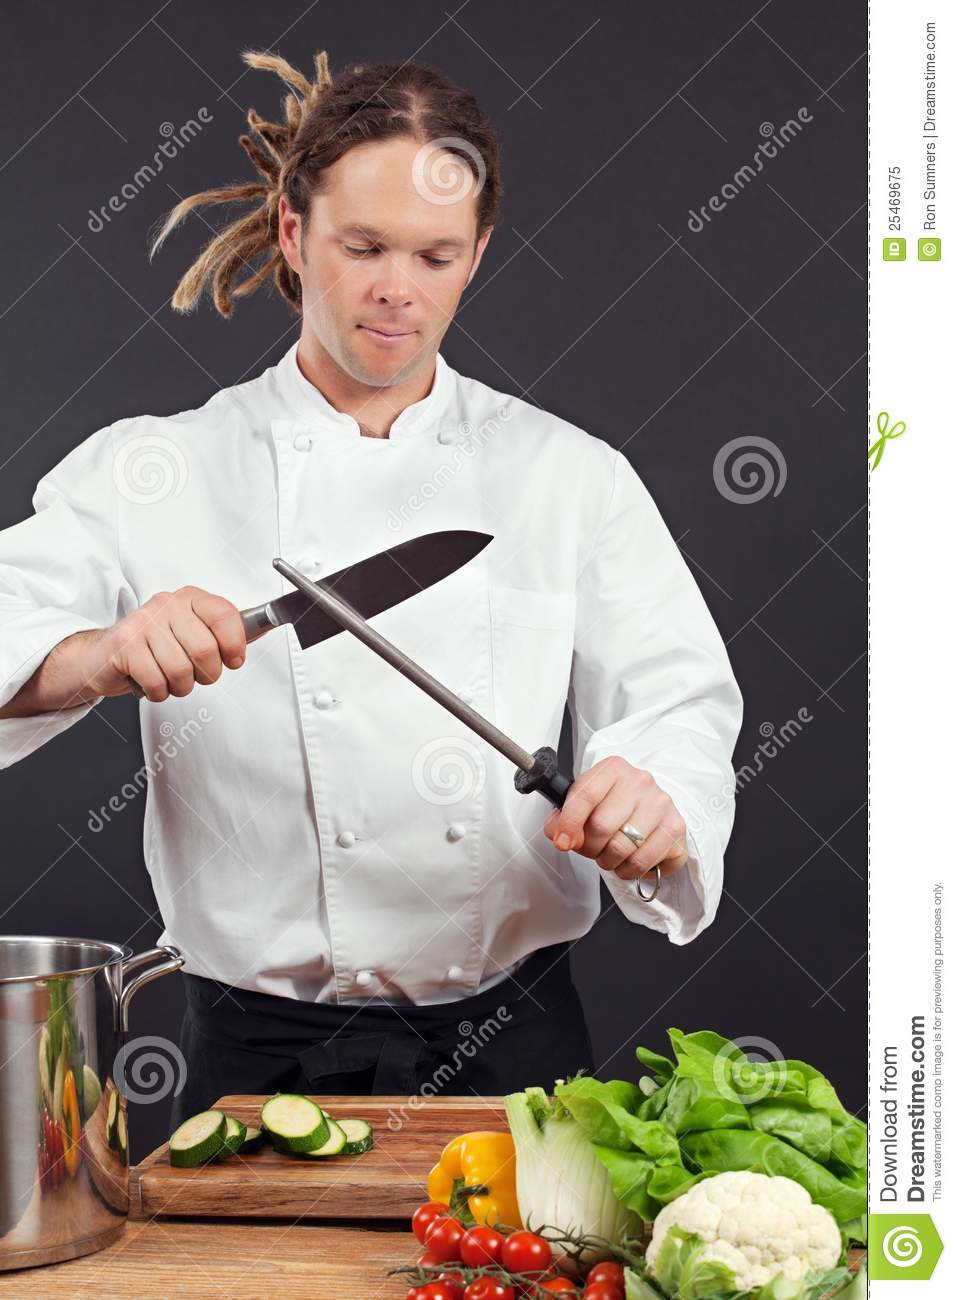 kitchen prices recessed lighting chef sharpening his knife stock image. image of male ...